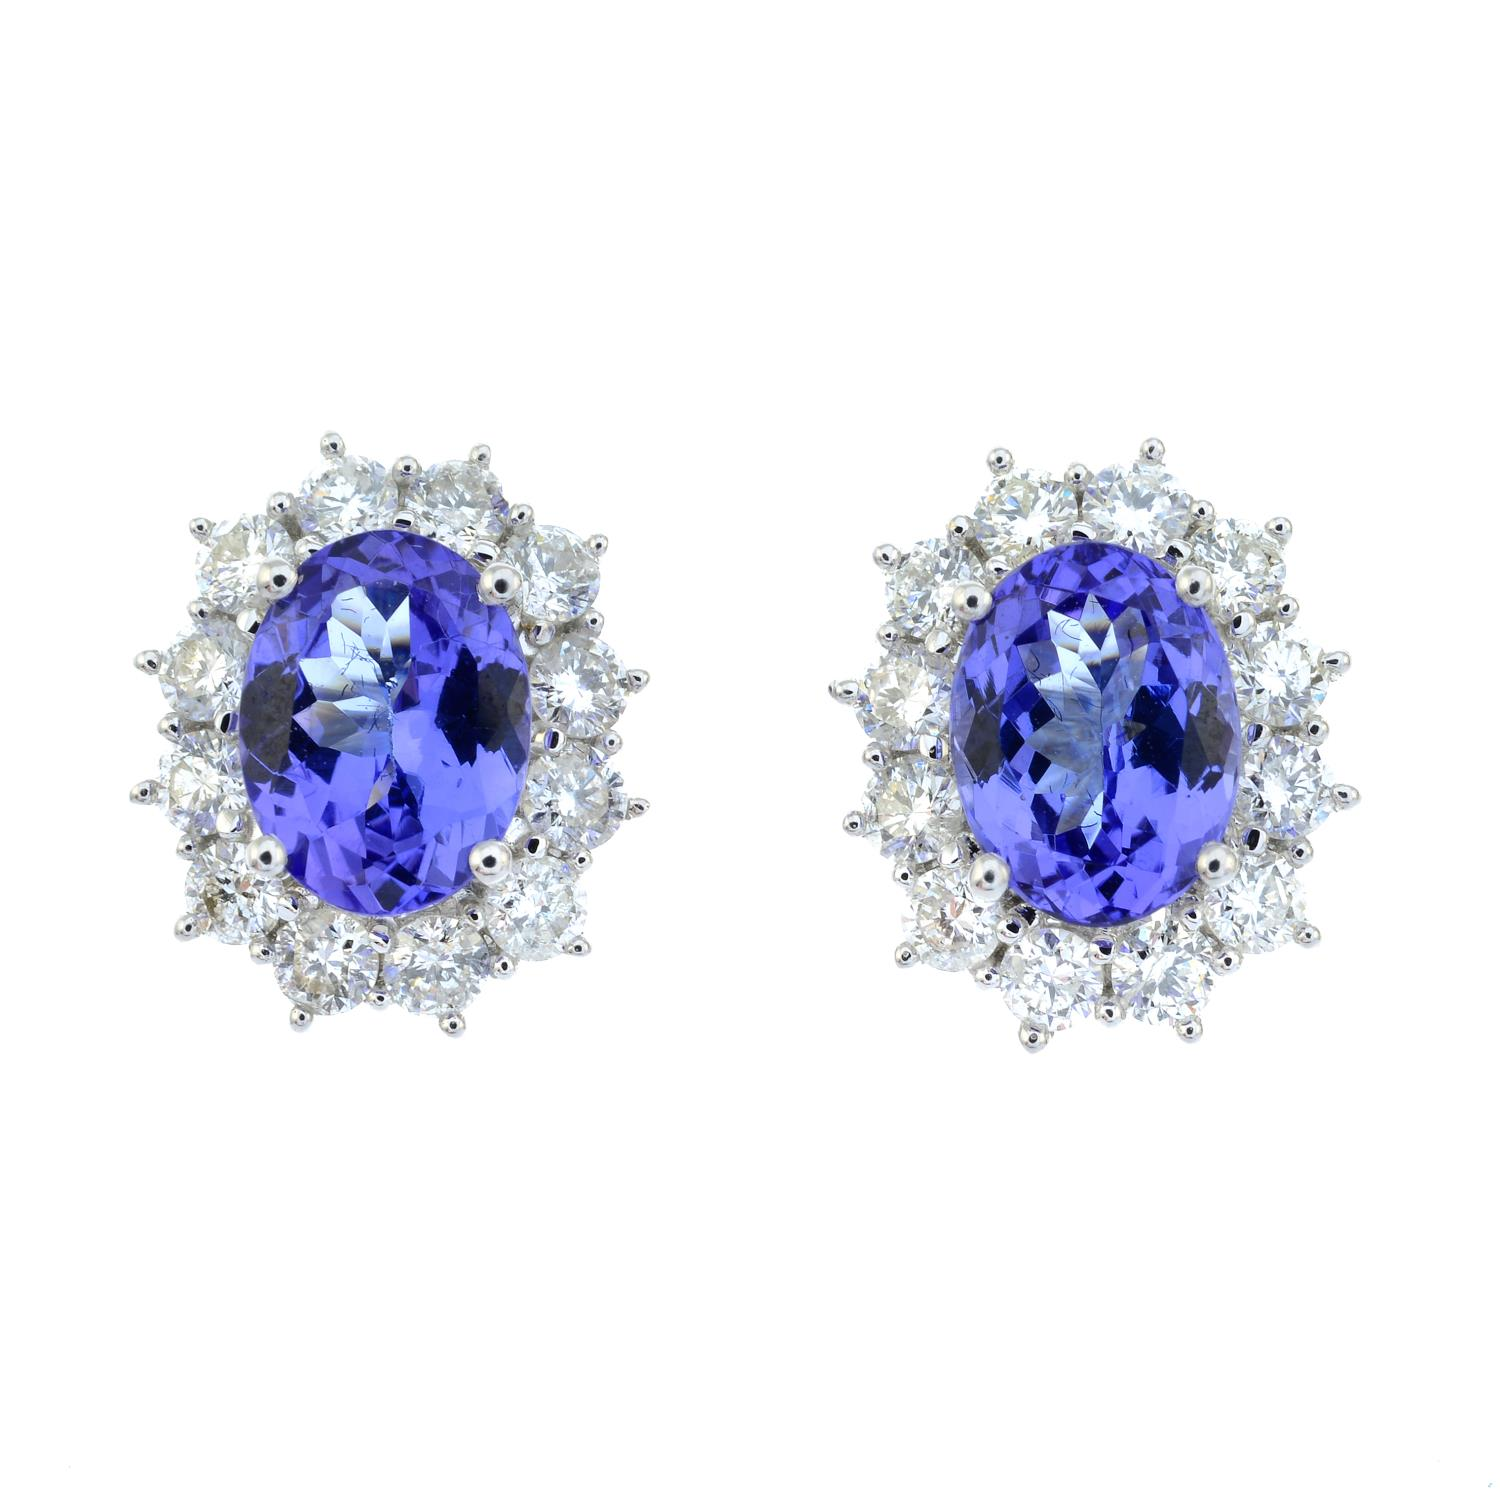 A pair of 18ct gold tanzanite and brilliant-cut diamond cluster earrings.Total tanzanite weight - Image 2 of 3